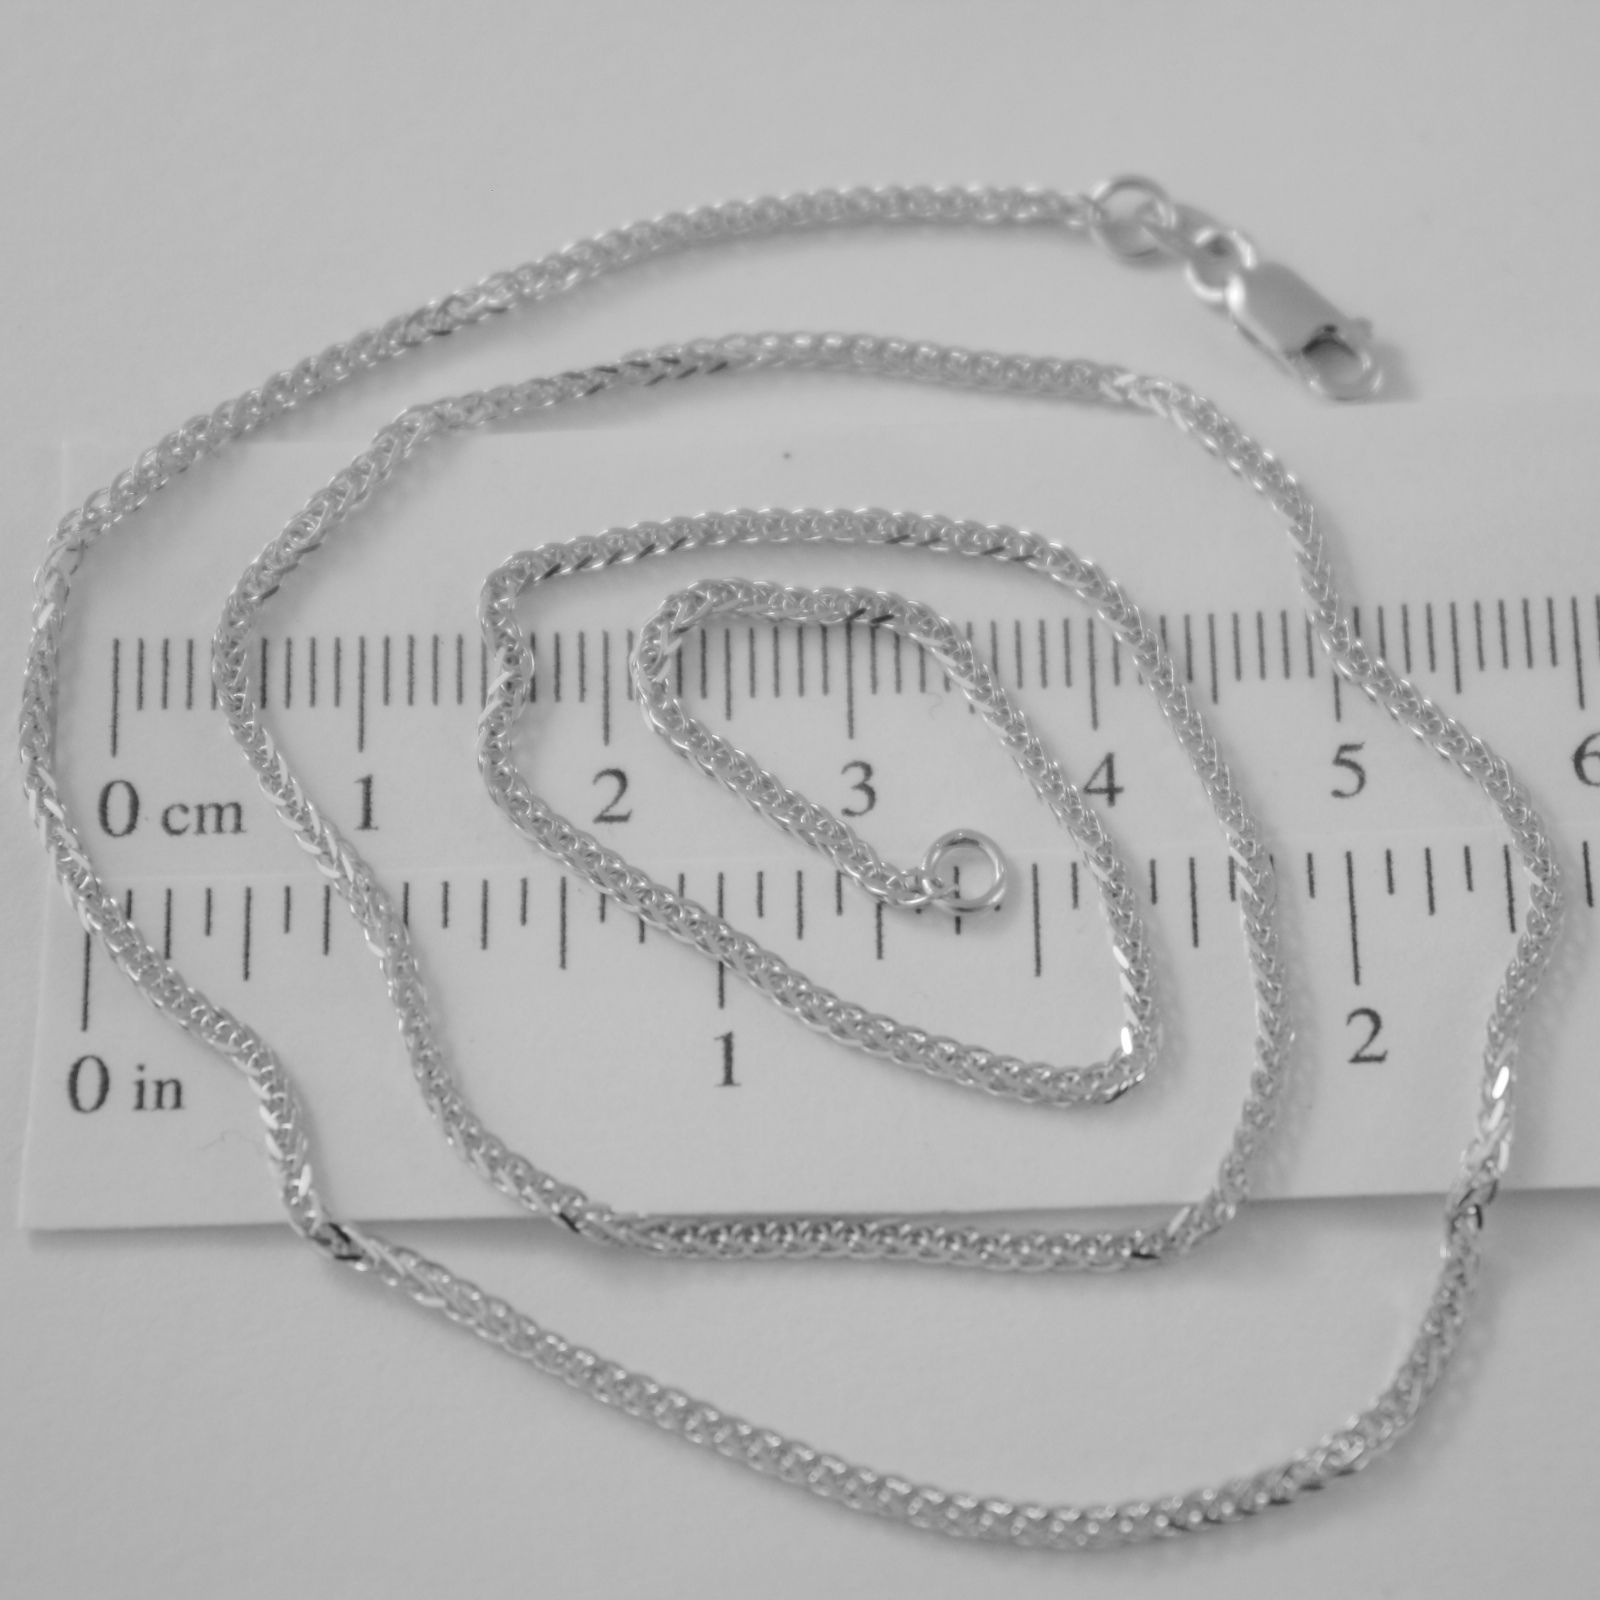 SOLID 18K WHITE GOLD CHAIN NECKLACE 2MM EAR SQUARE MESH 19.69 IN, MADE IN ITALY